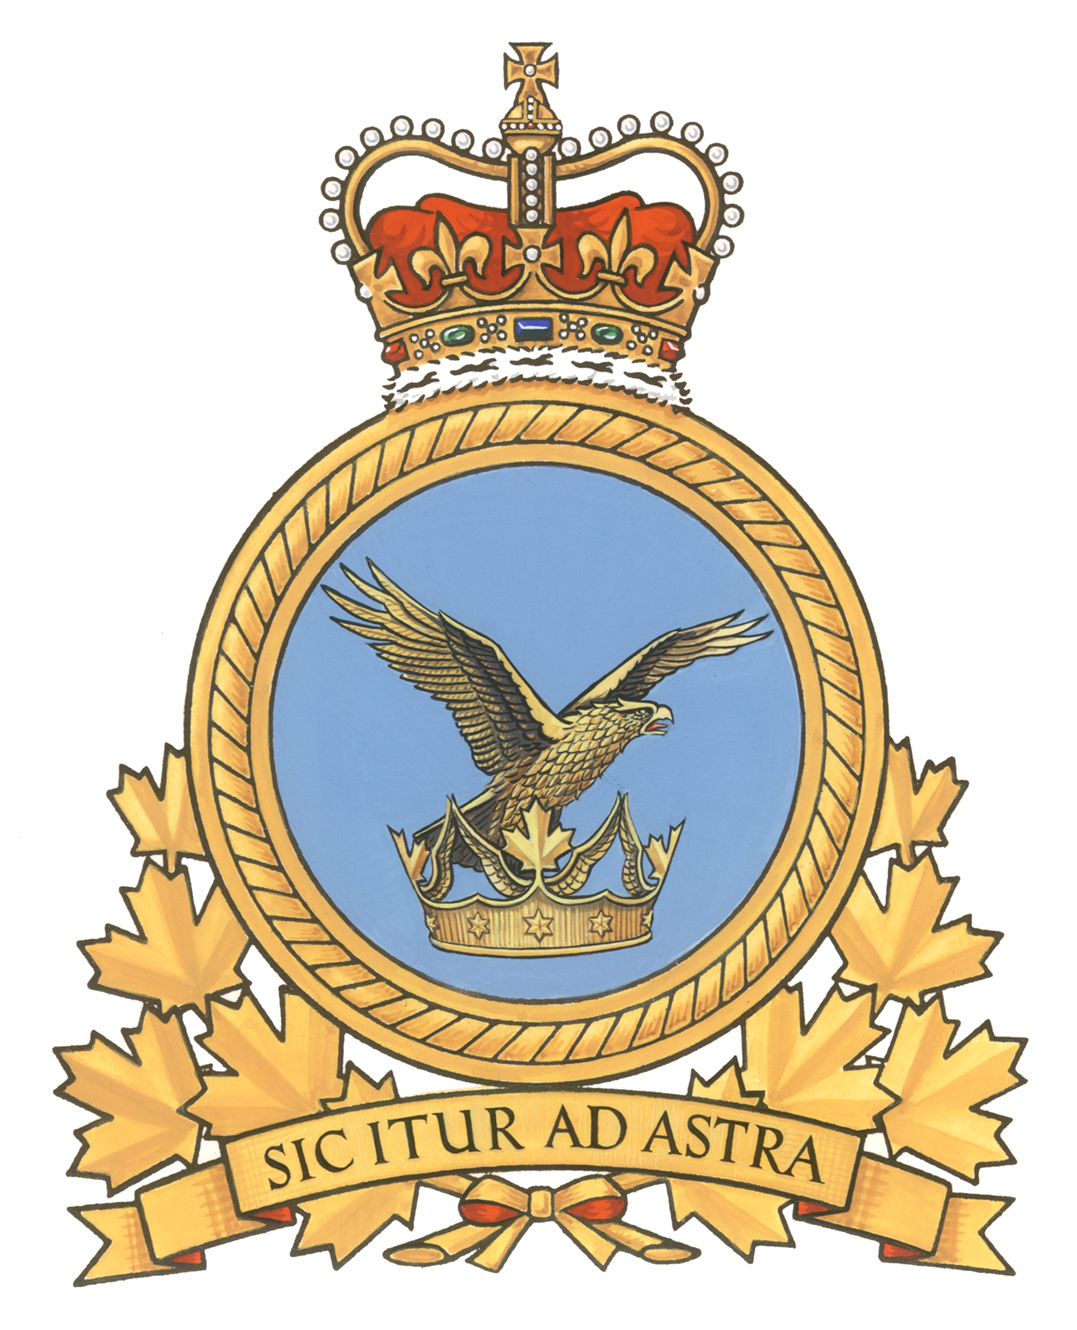 The Air Command badge, which has been replaced by the new RCAF badge, displayed an eagle volant, rising out of a Canadian astral crown. PHOTO: DND.